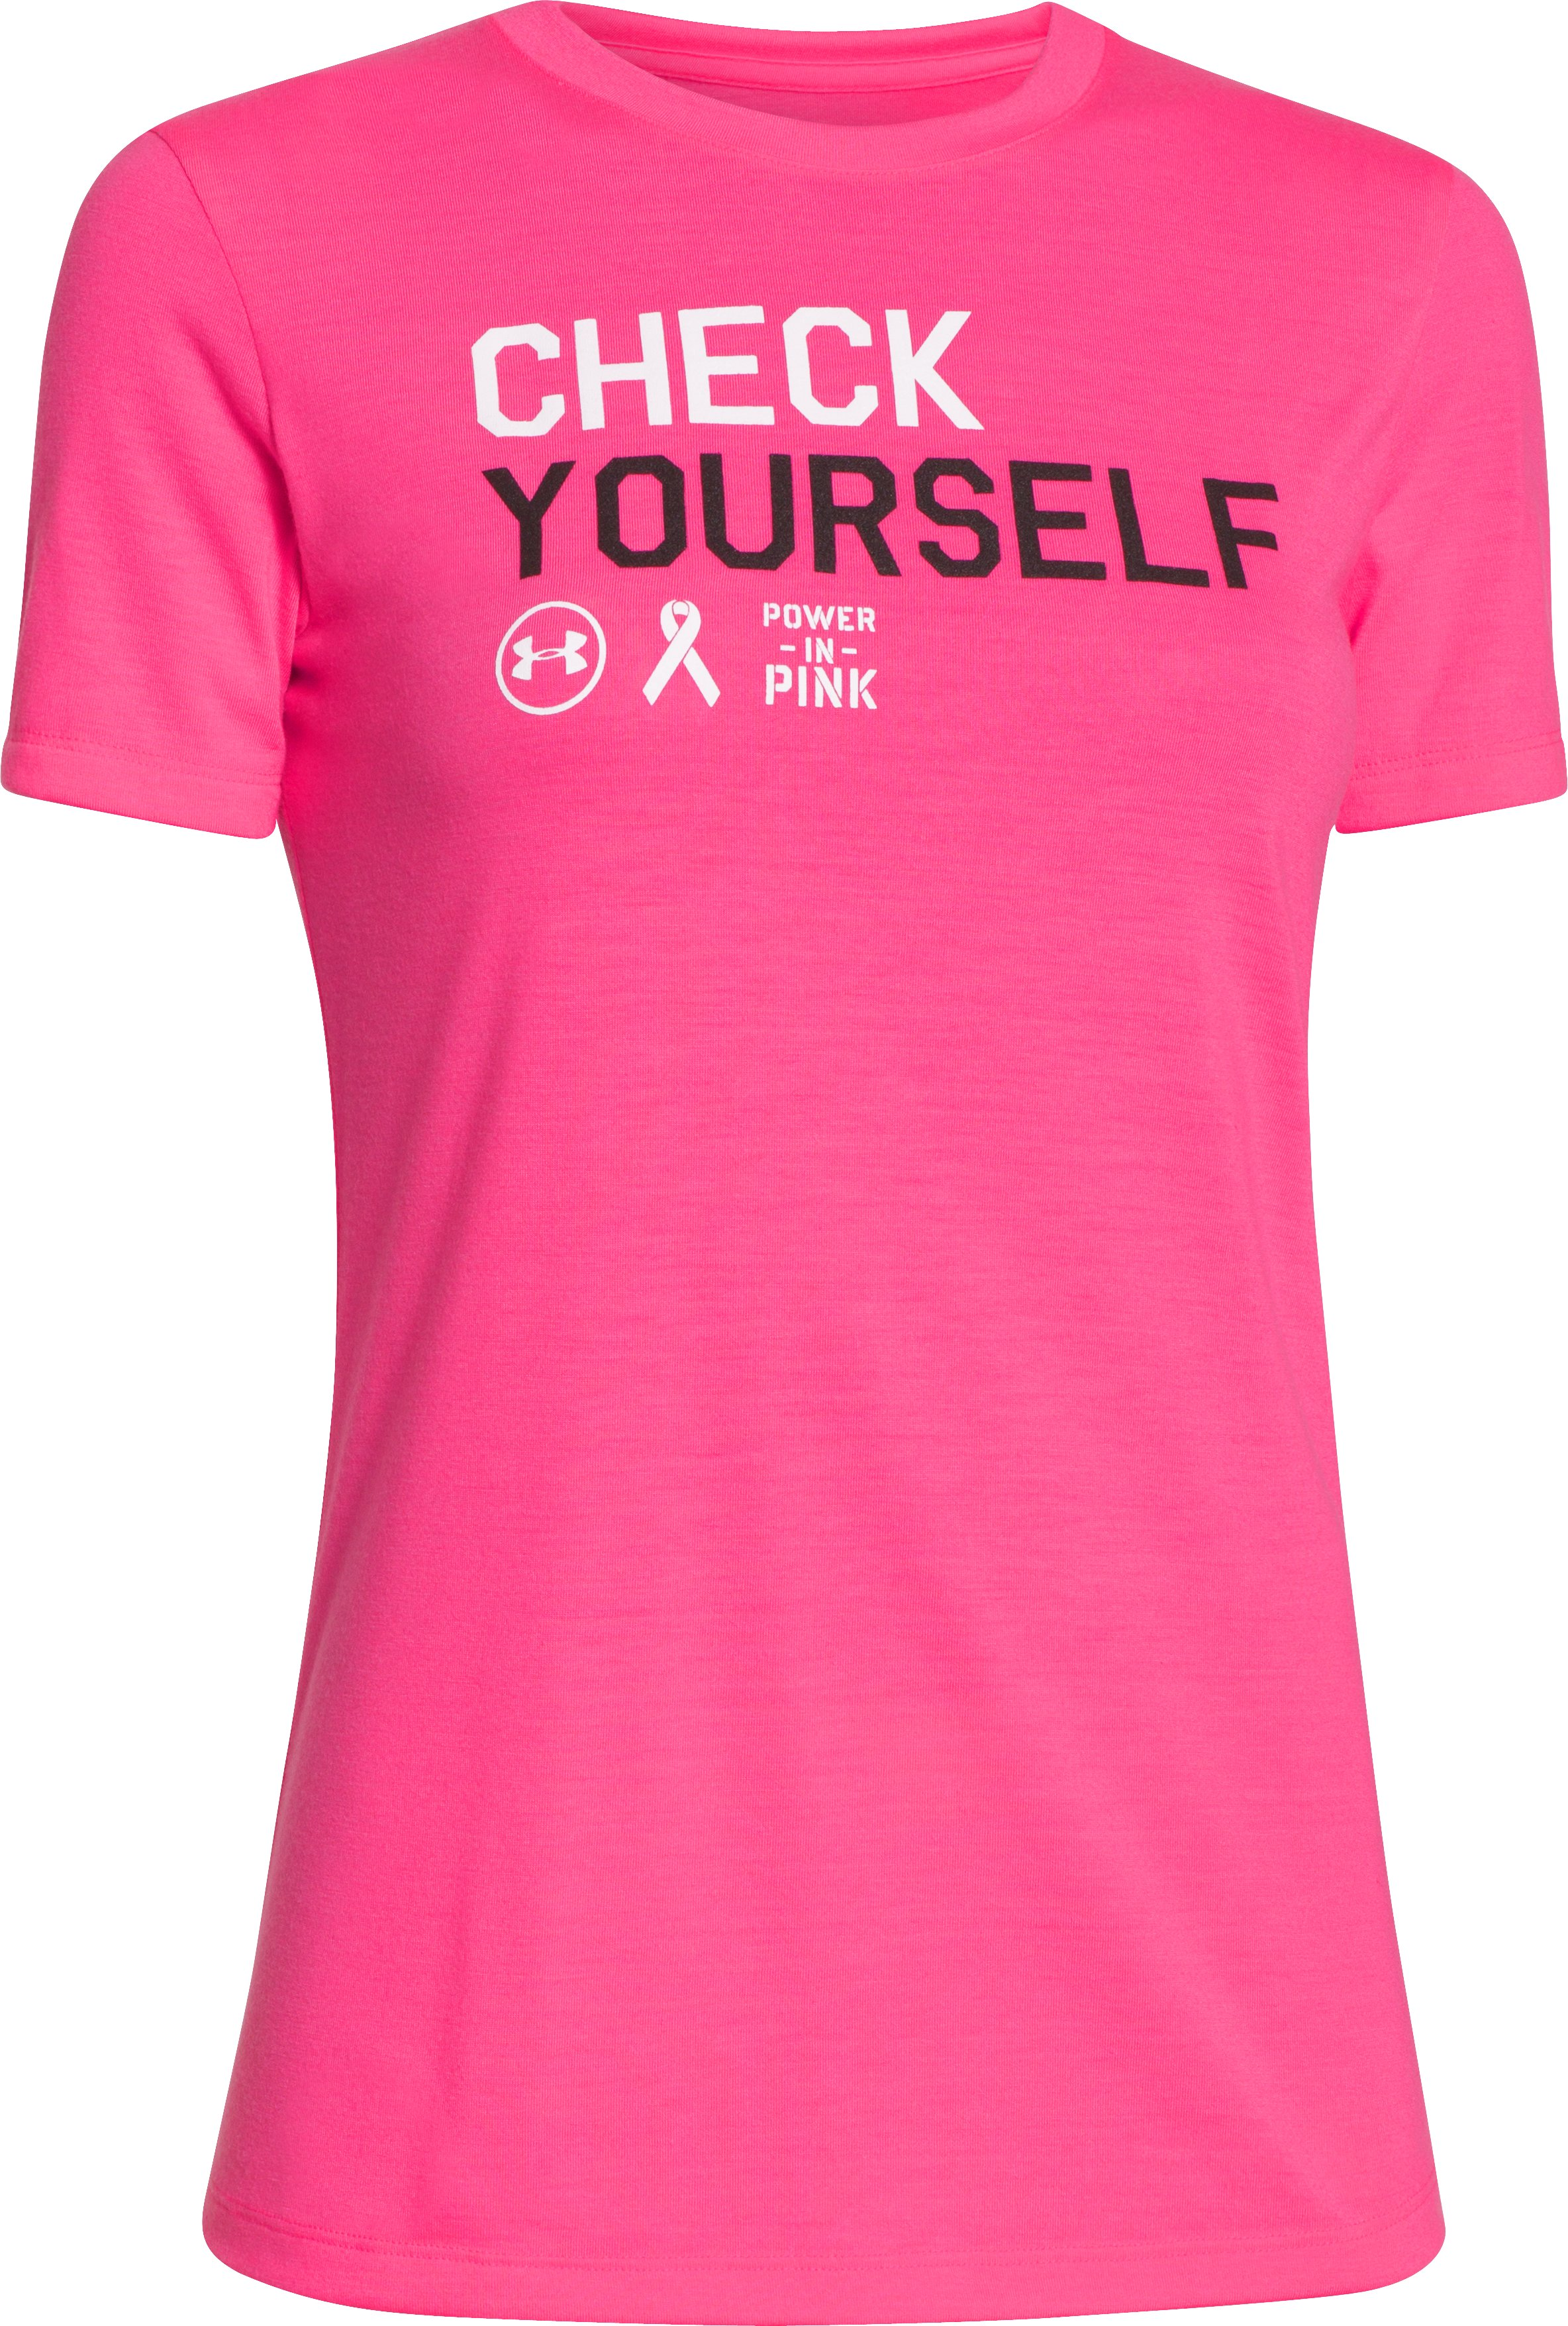 Women's UA Power In Pink® Check Yourself T-Shirt, Cerise, undefined